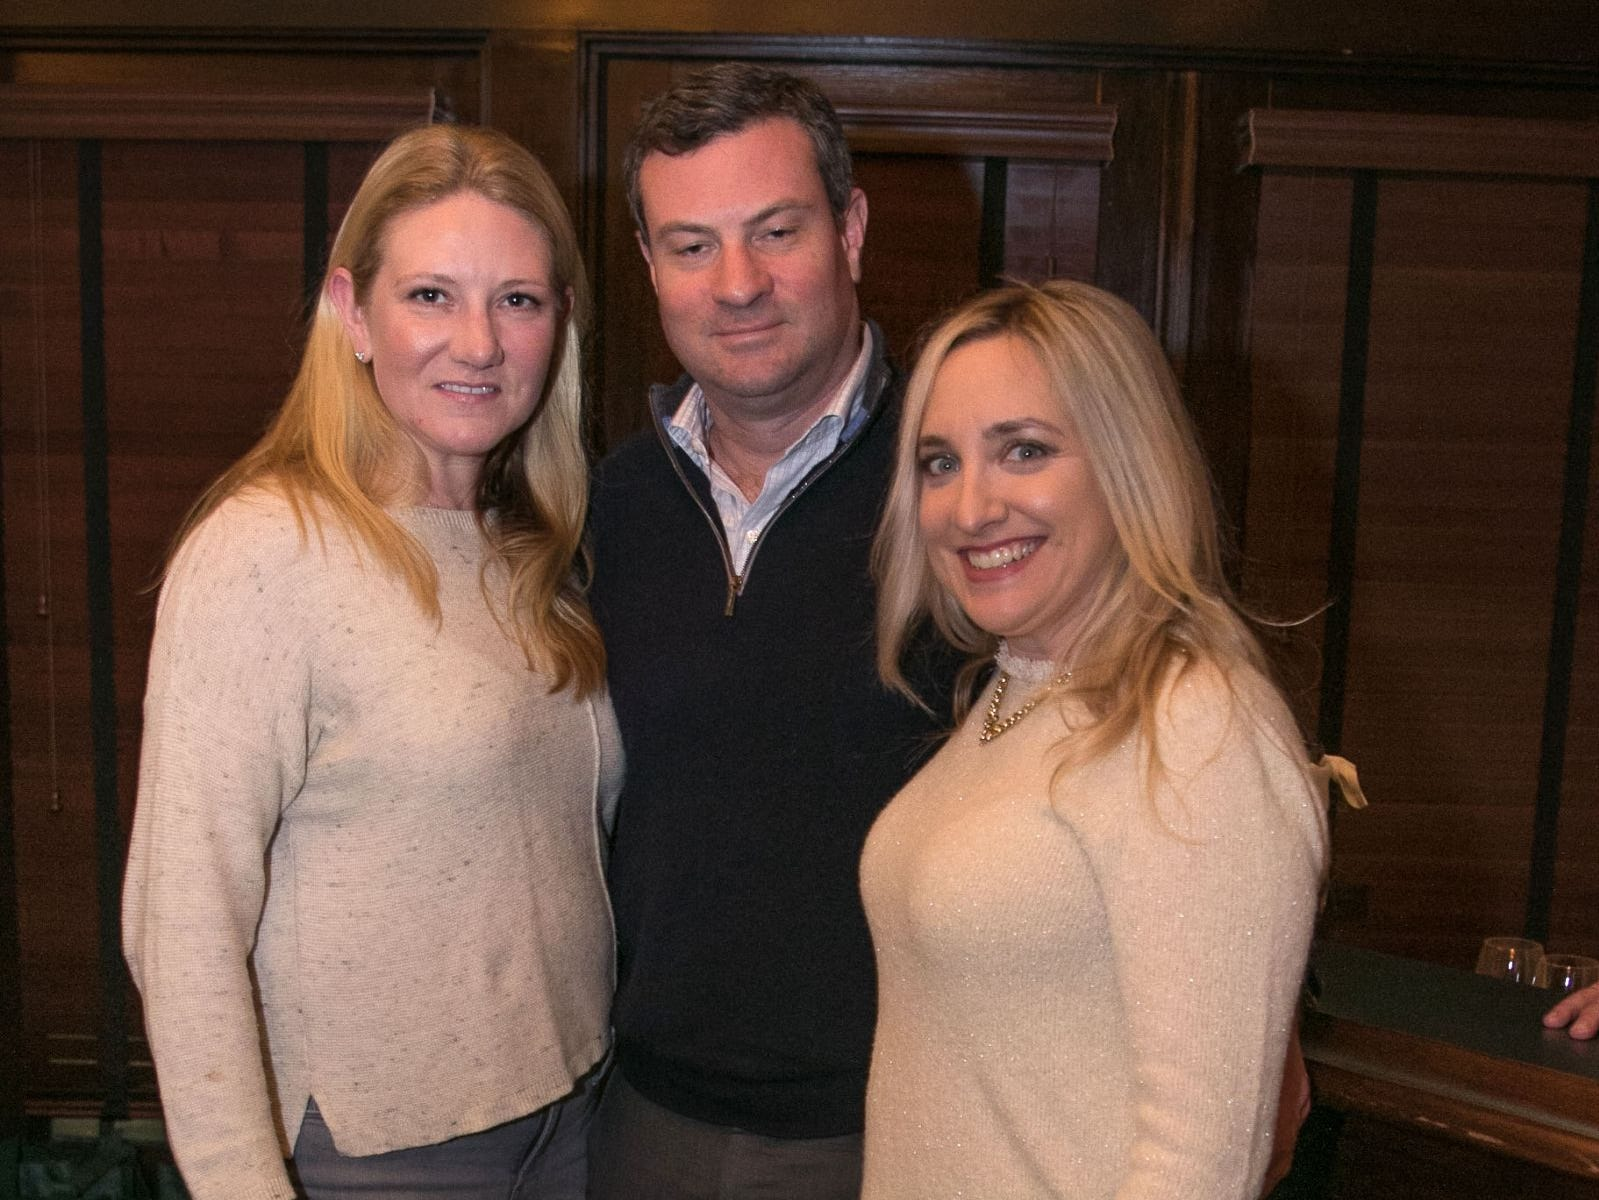 Corrie Gaffoglio. Gerald Chaney, Stephanie Reynolds. Christina Gibbons of Special Properties held a cocktail reception to acknowledge her clients at Roots Steakhouse in Ridgewood. 02/07/2019